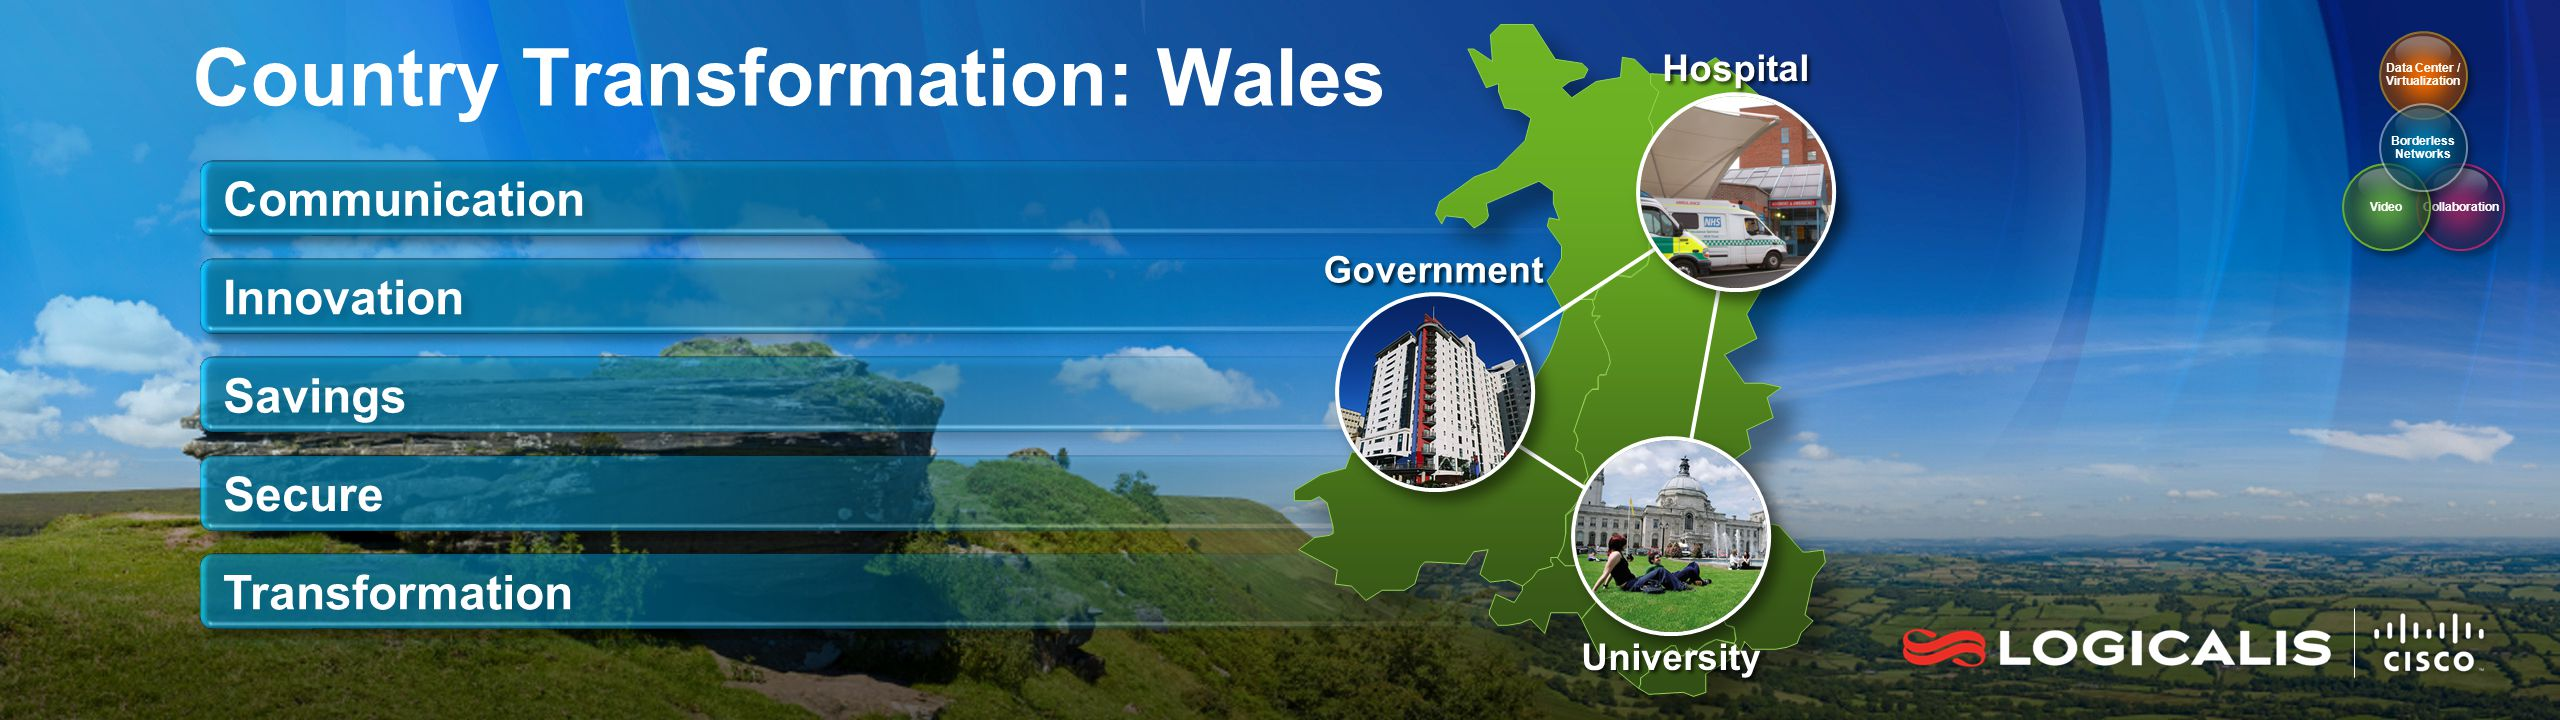 Country Transformation: Wales Collaboration Video Hospital Government University Data Center / Virtualization Borderless Networks